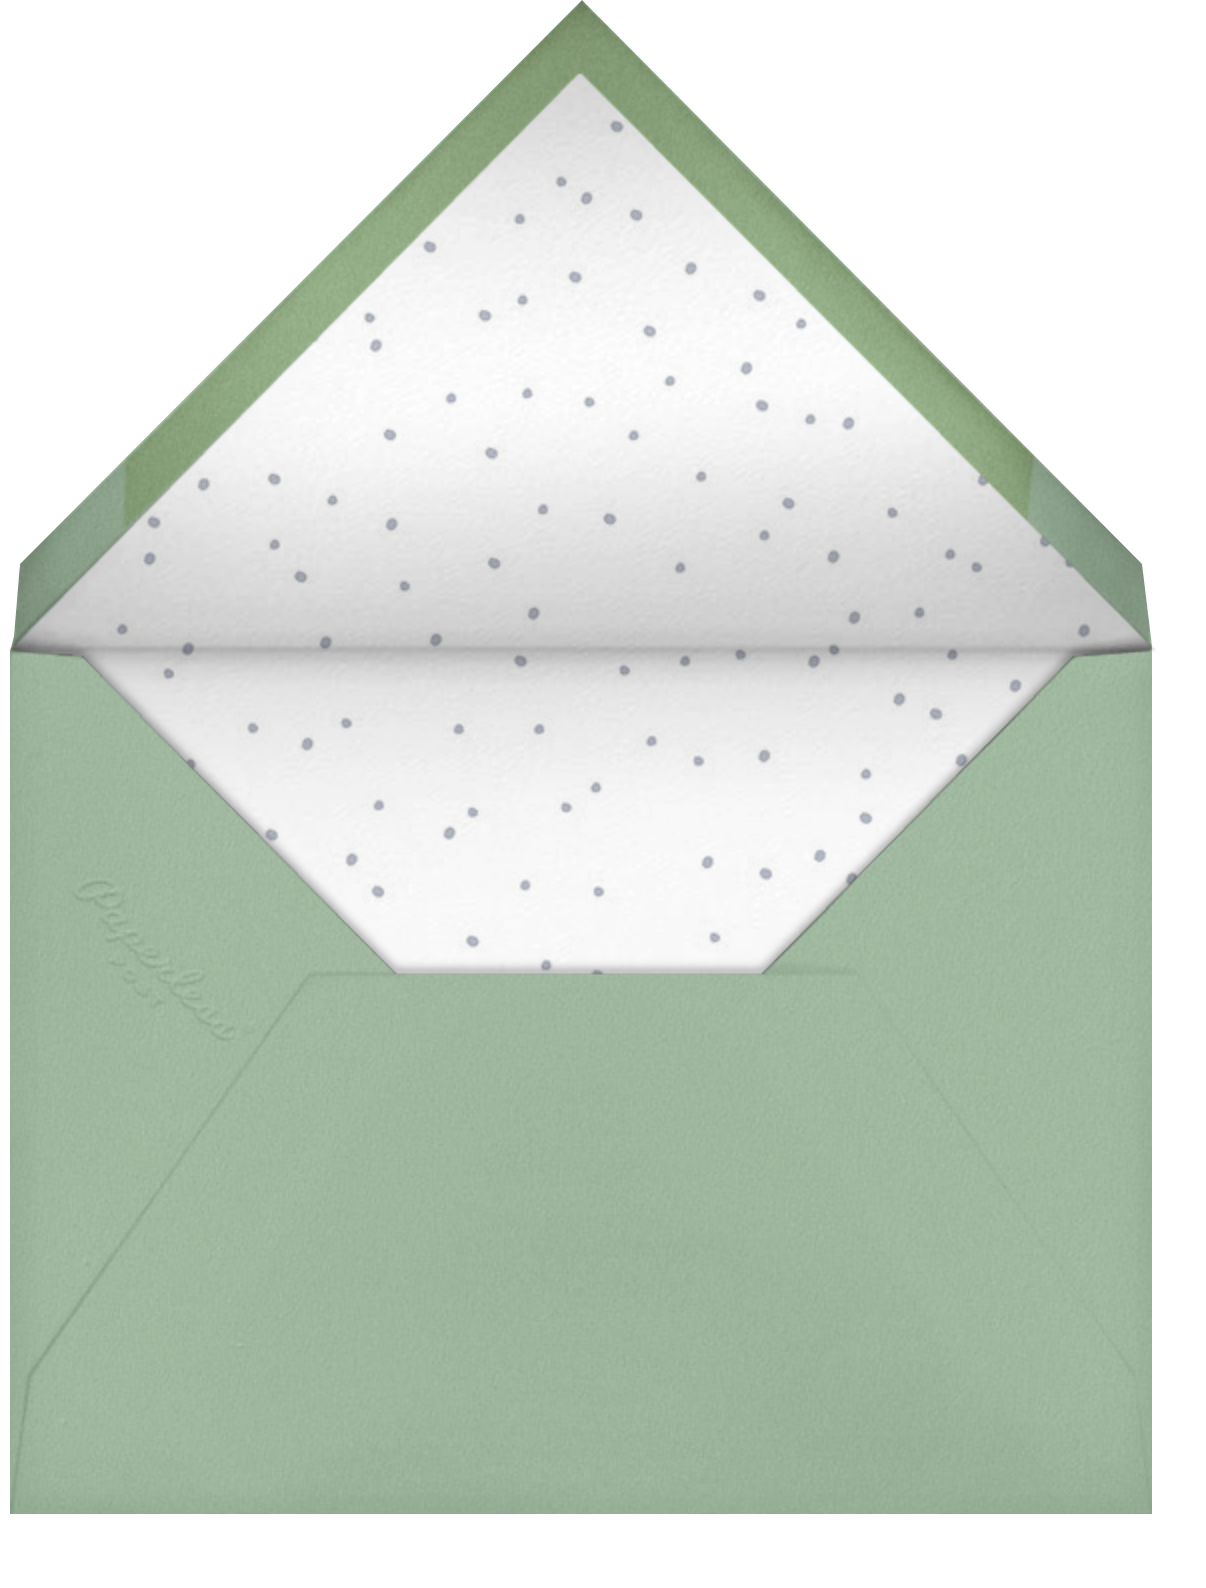 Jungle Love - Little Cube - Woodland baby shower invitations - envelope back